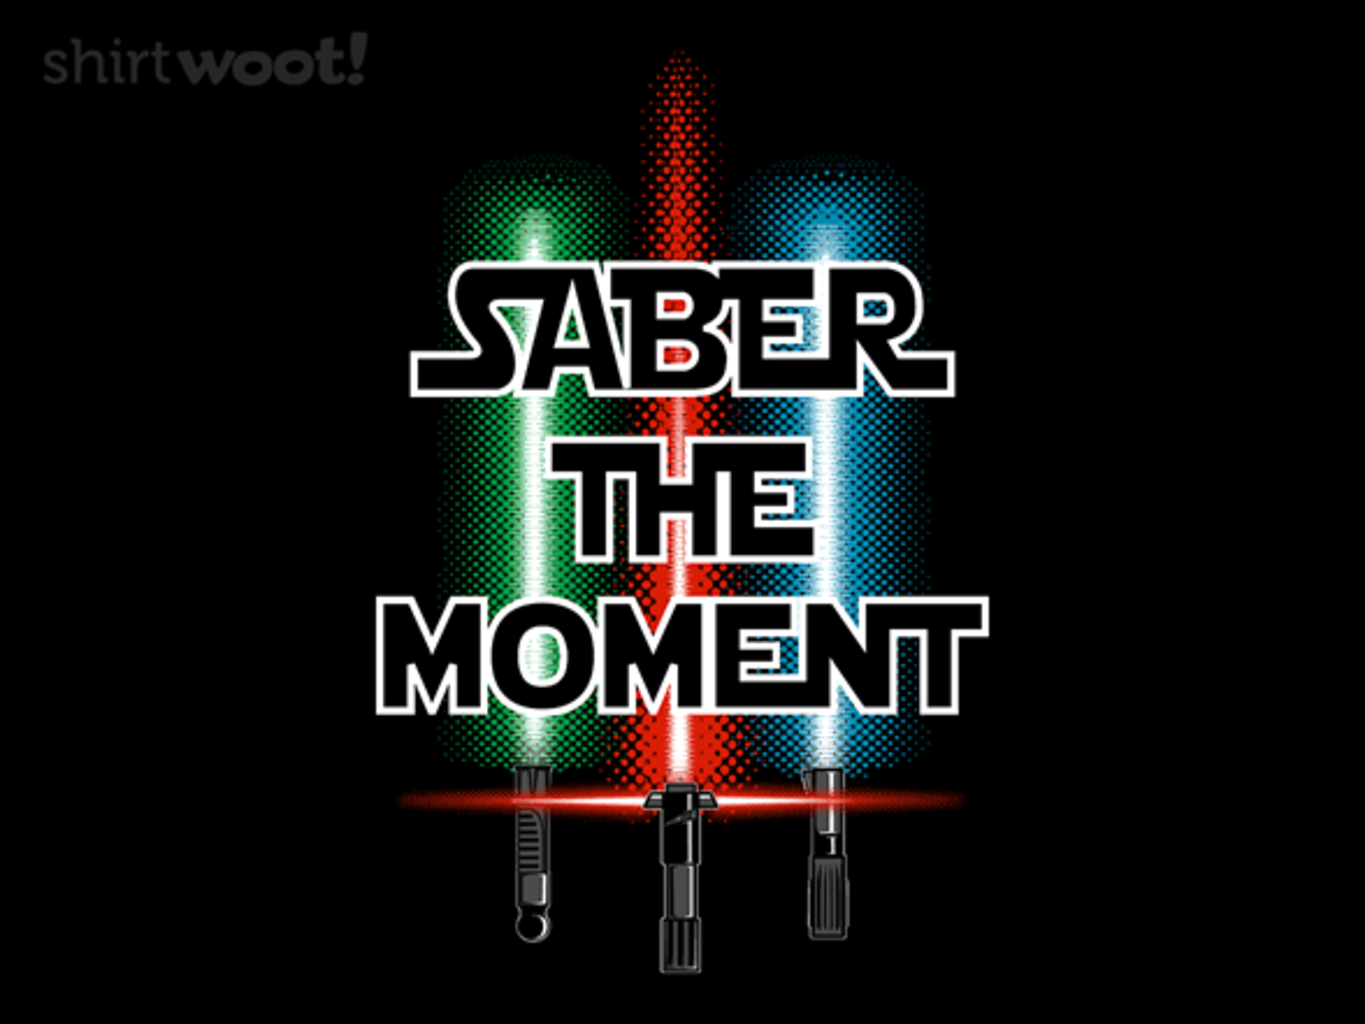 Woot!: Saber the Moment - $15.00 + Free shipping